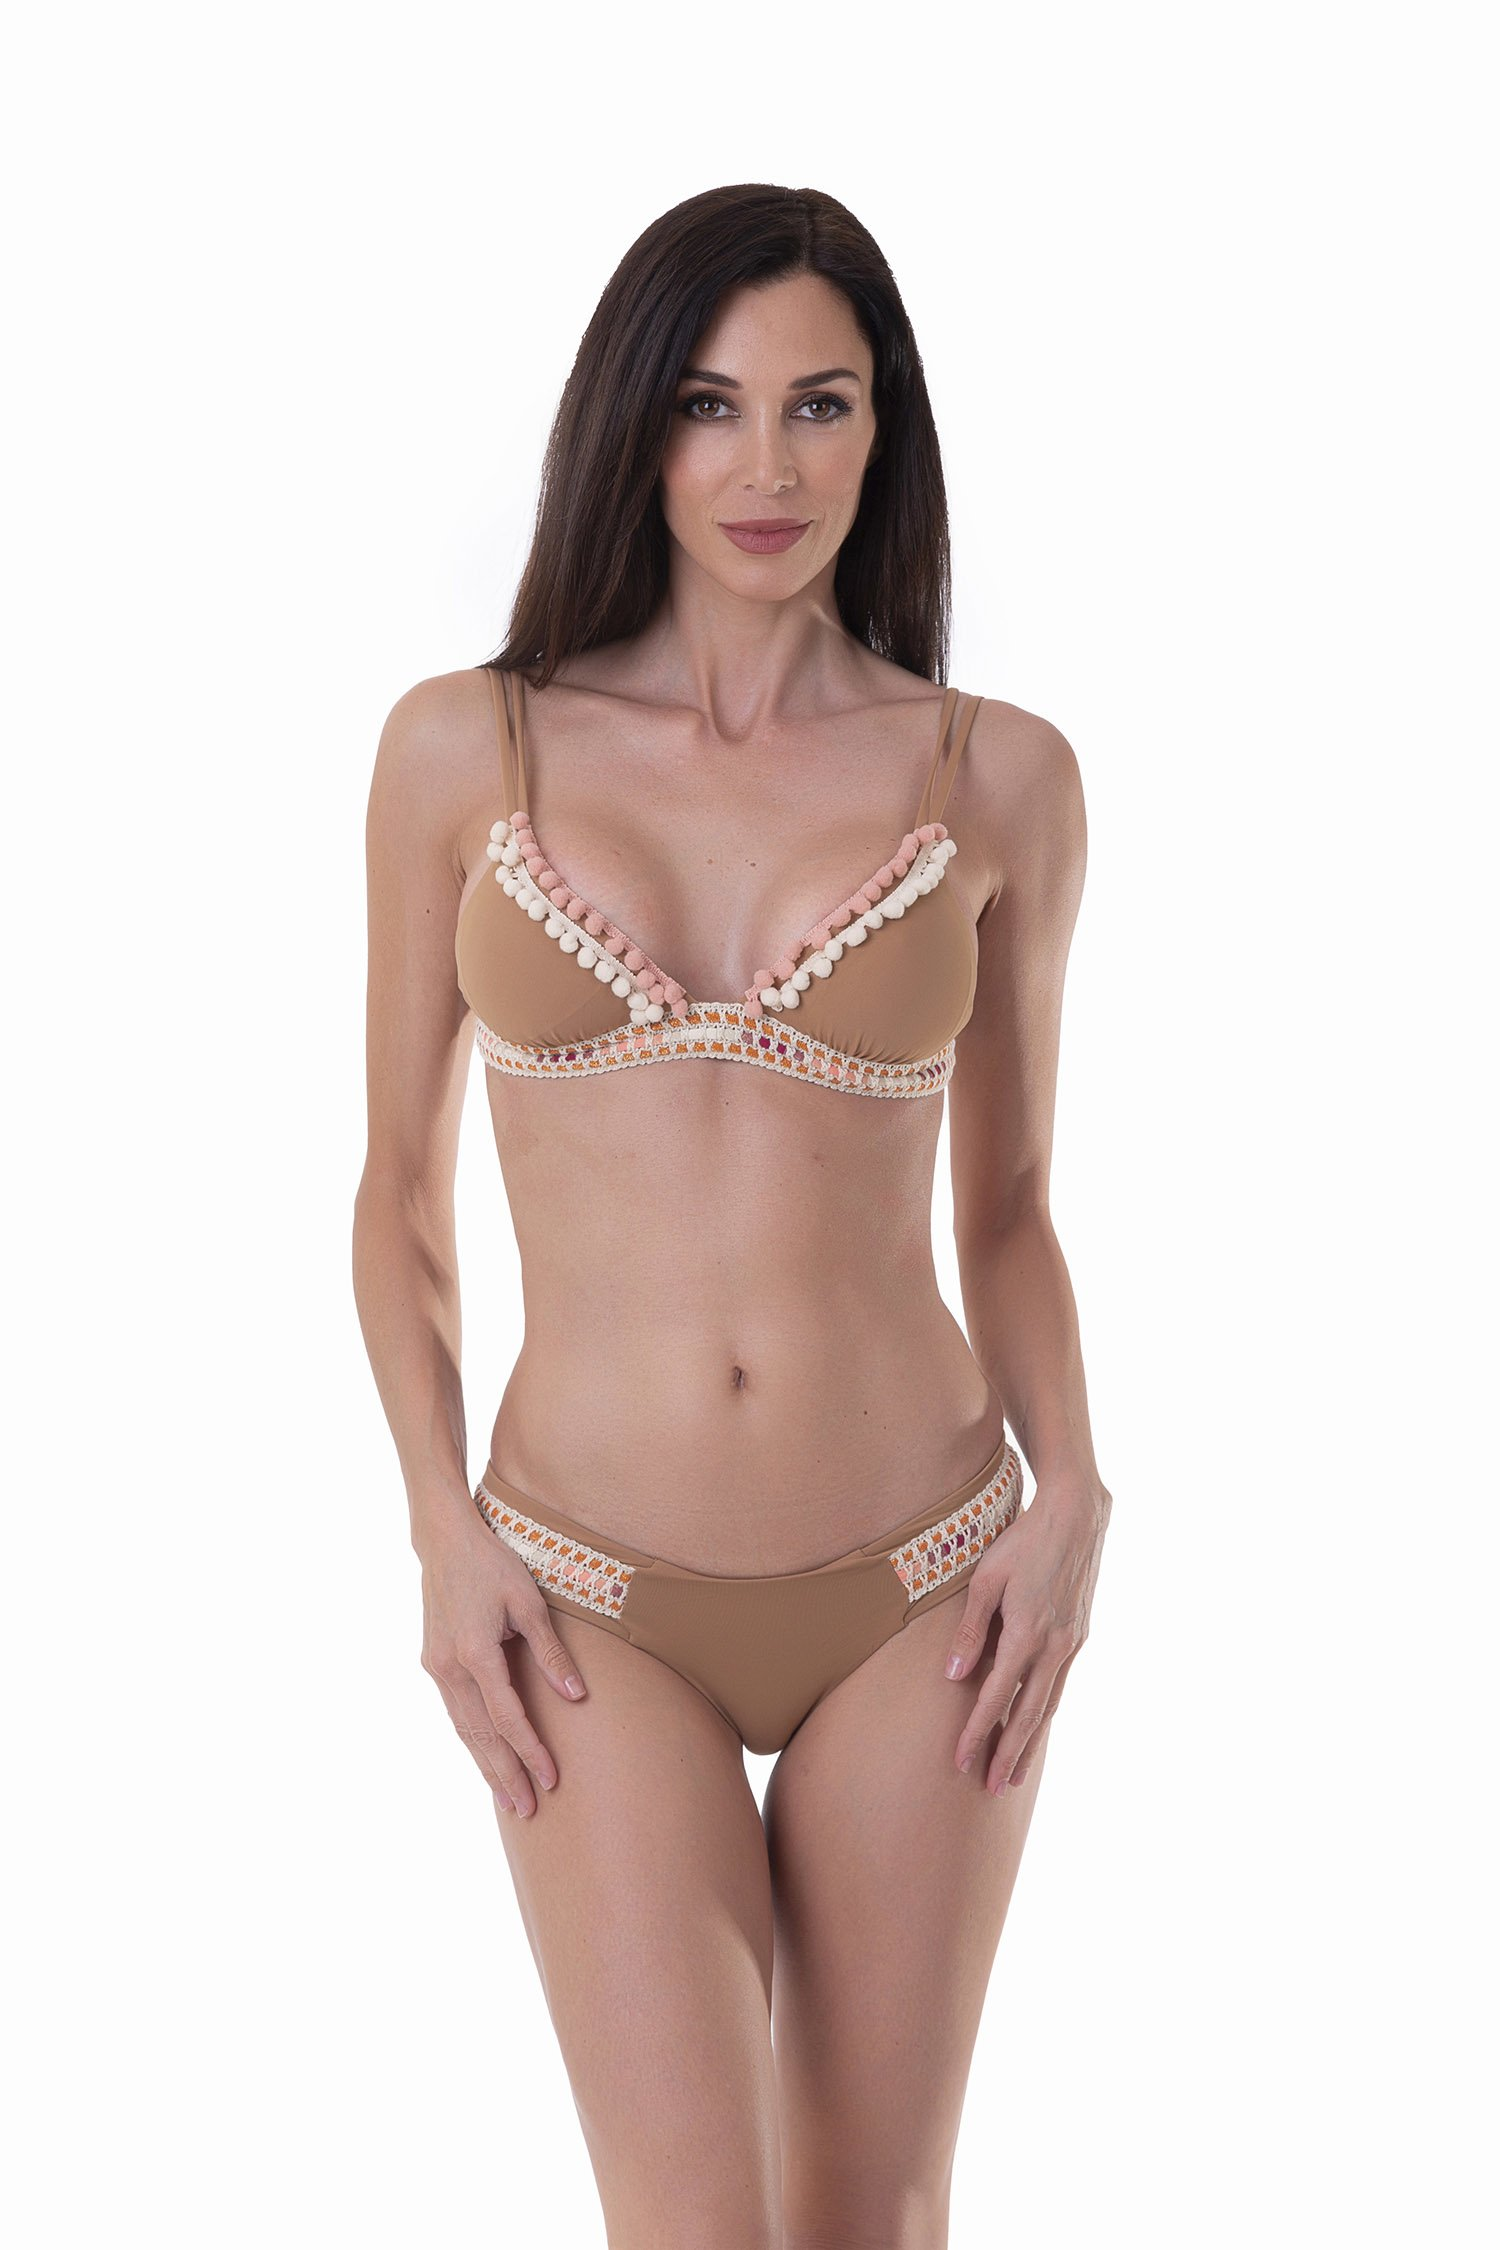 LUXE PLAIN COLOUR TRIANGLE BIKINI WITH TRIMMING BELOW THE BUST - Rame